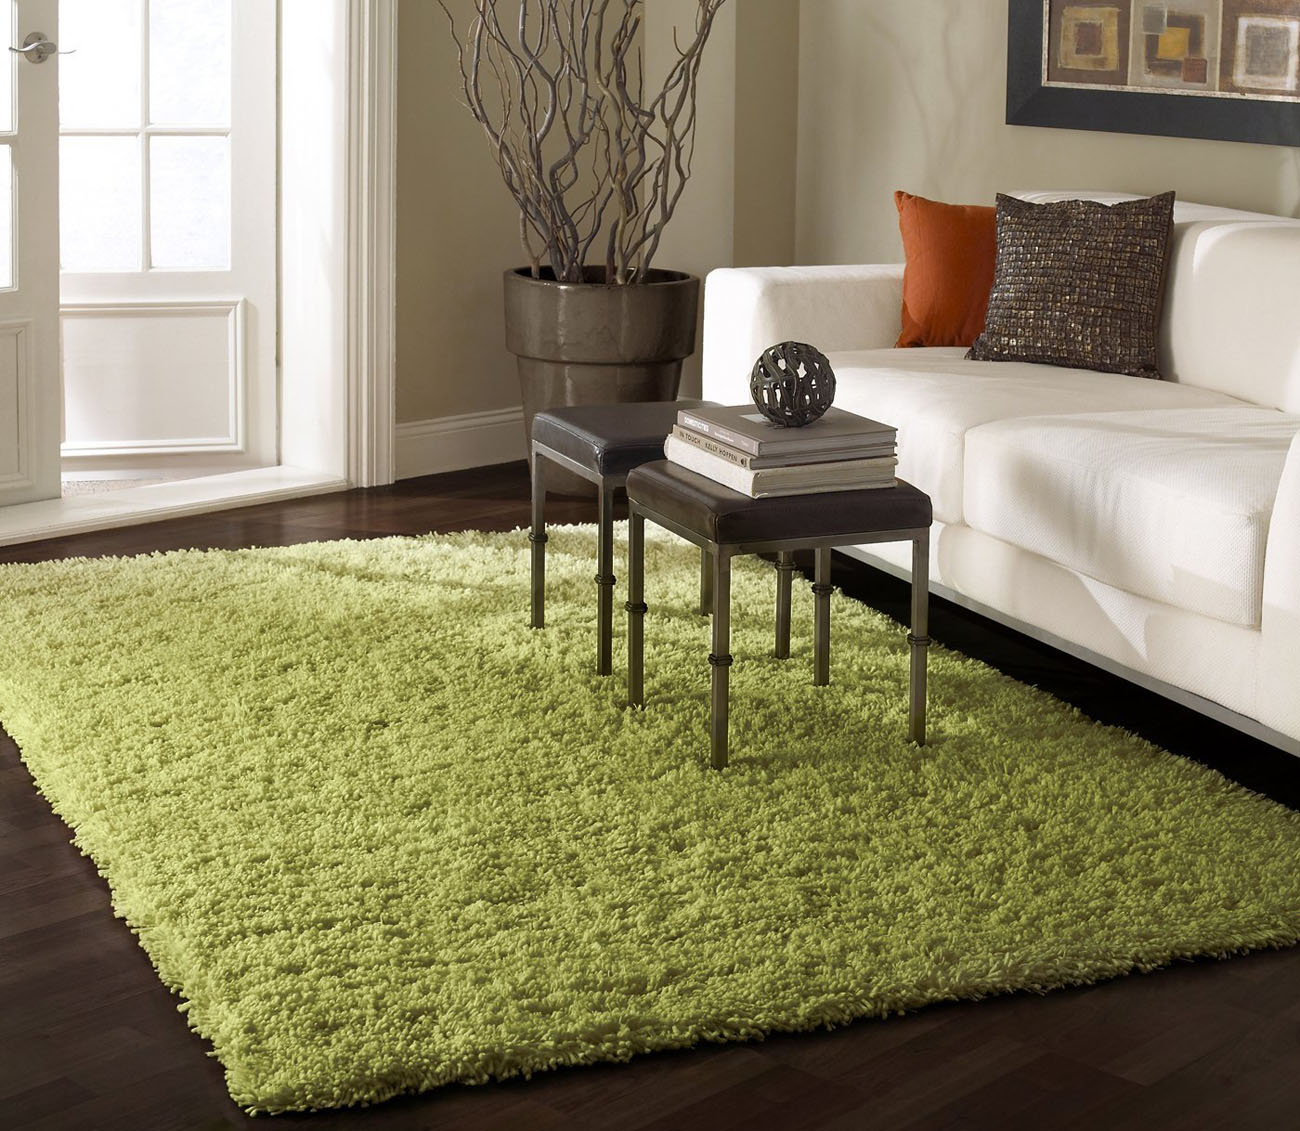 Create cozy room ambience with area rugs idesignarch - Tapis de salon moderne ...